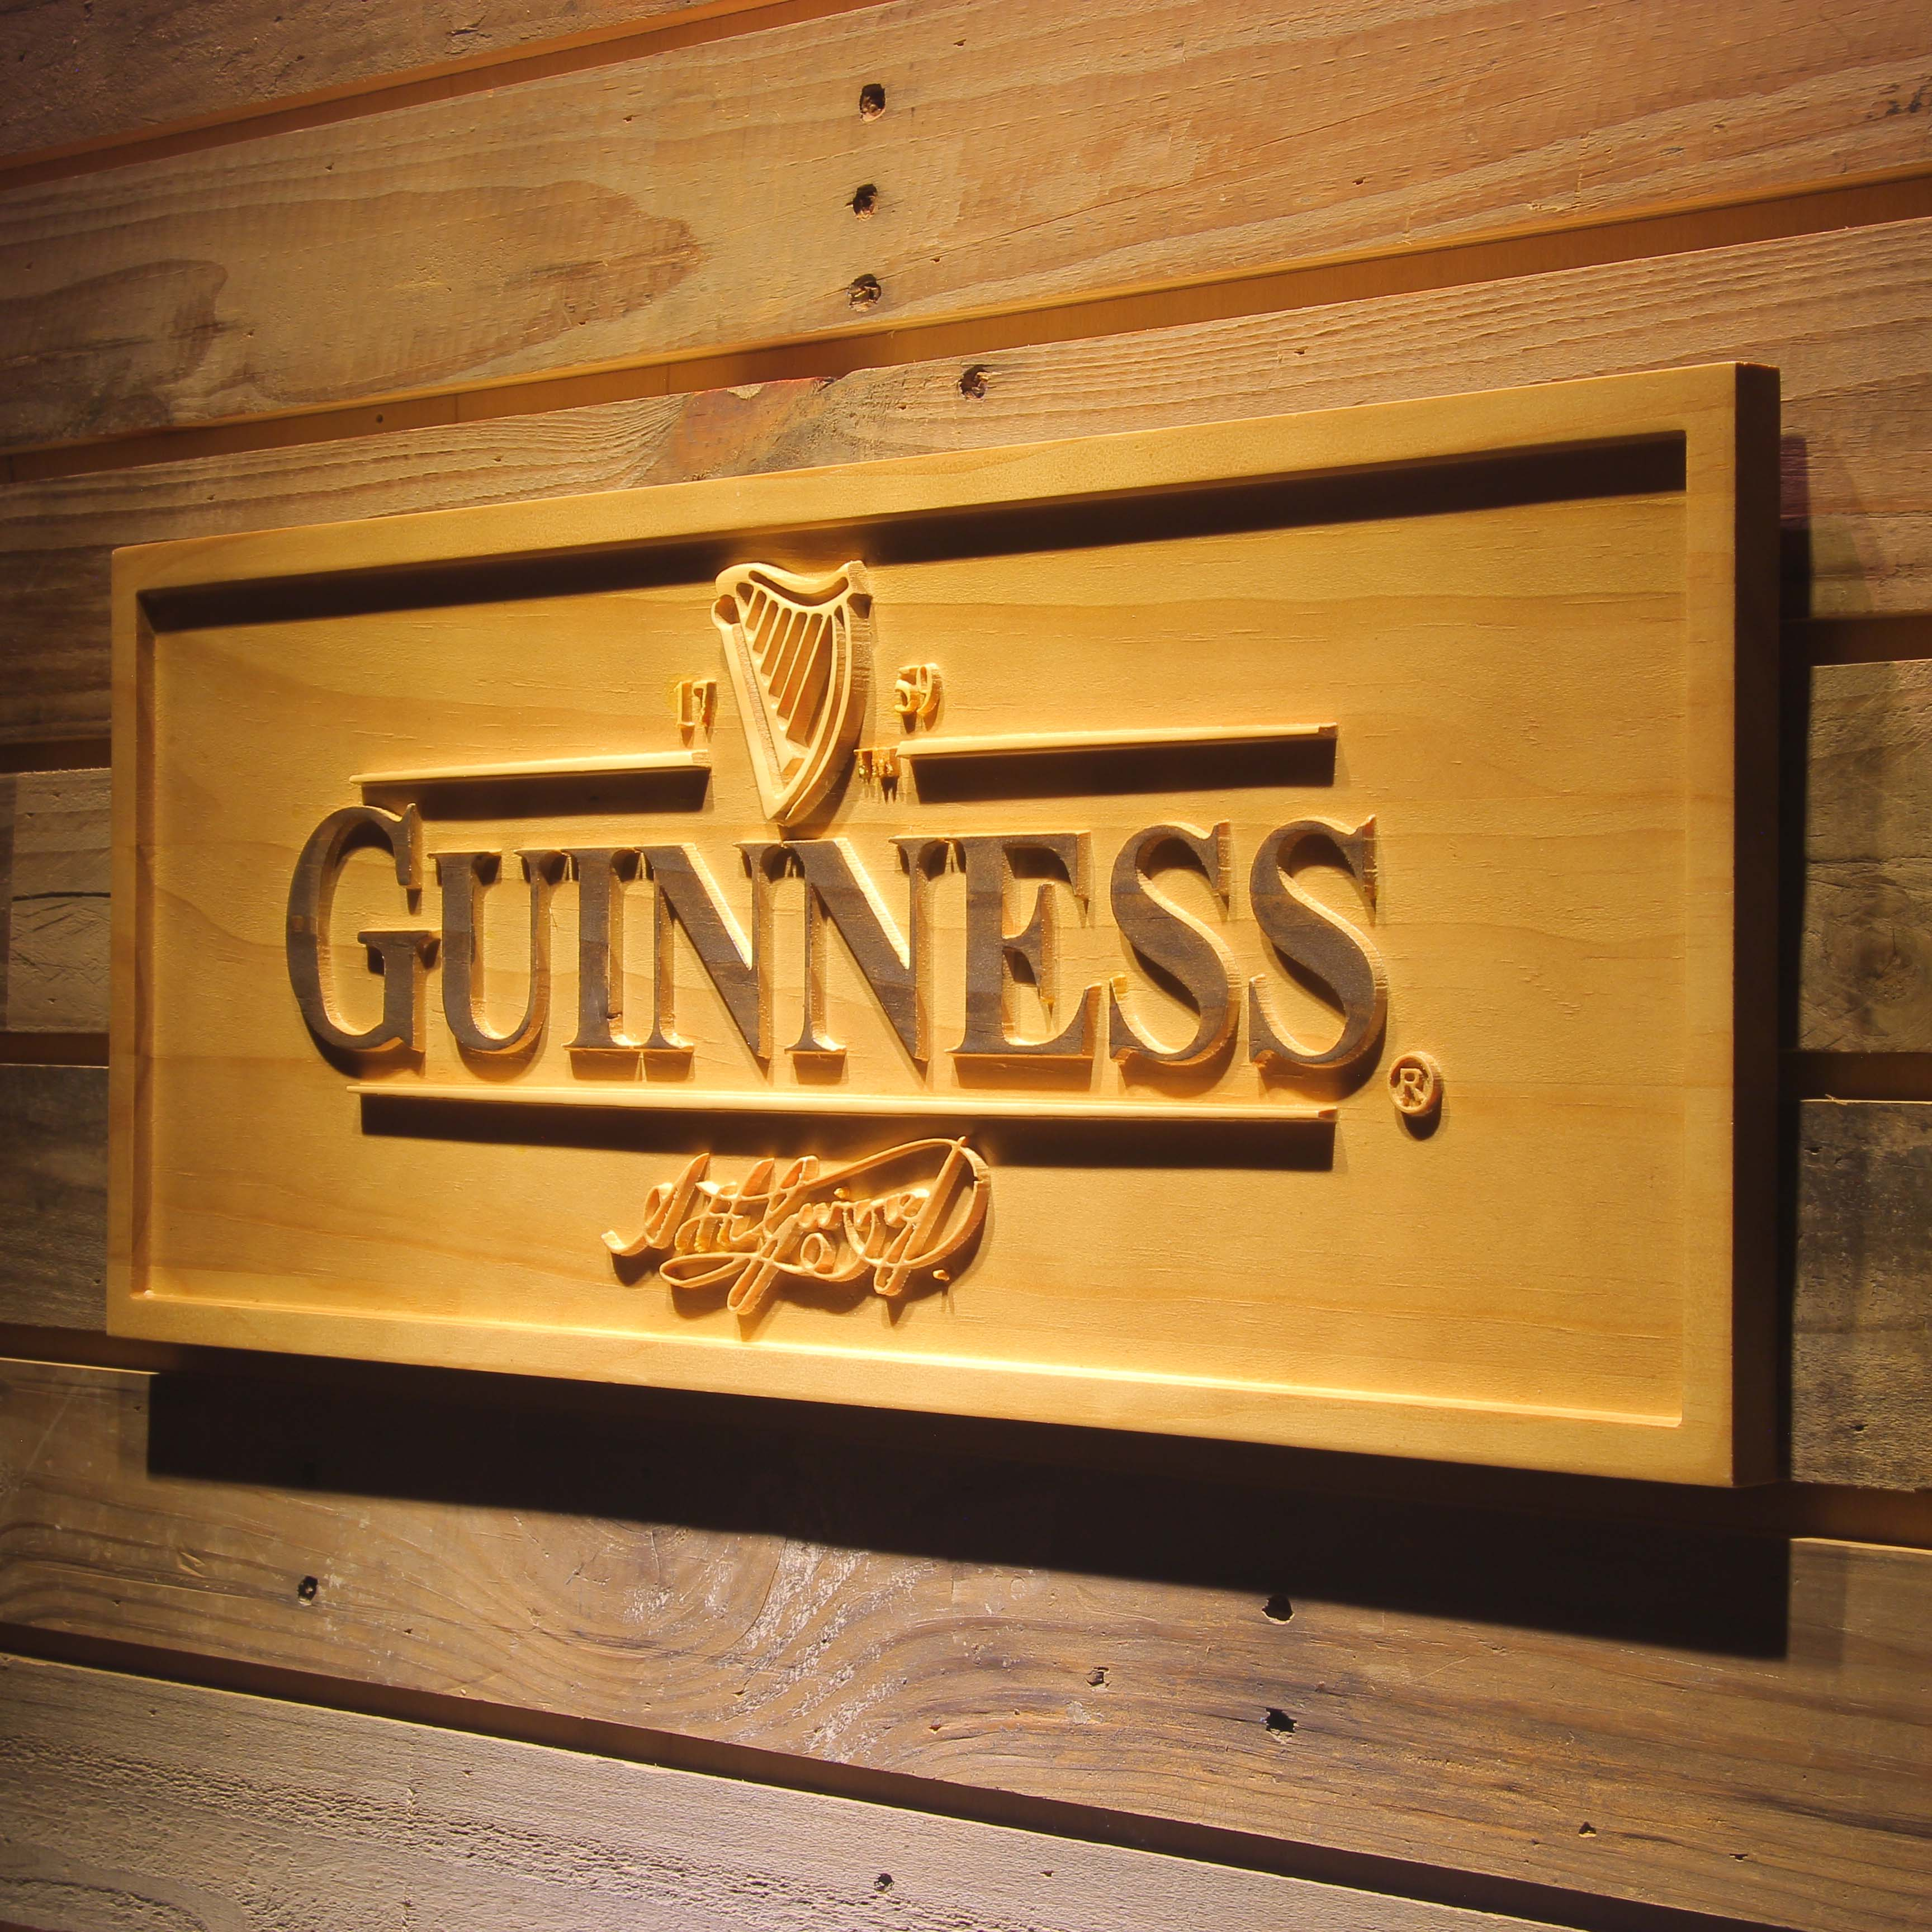 GUINNESS Ale  3D Wooden Signs - WoodySigns Co.